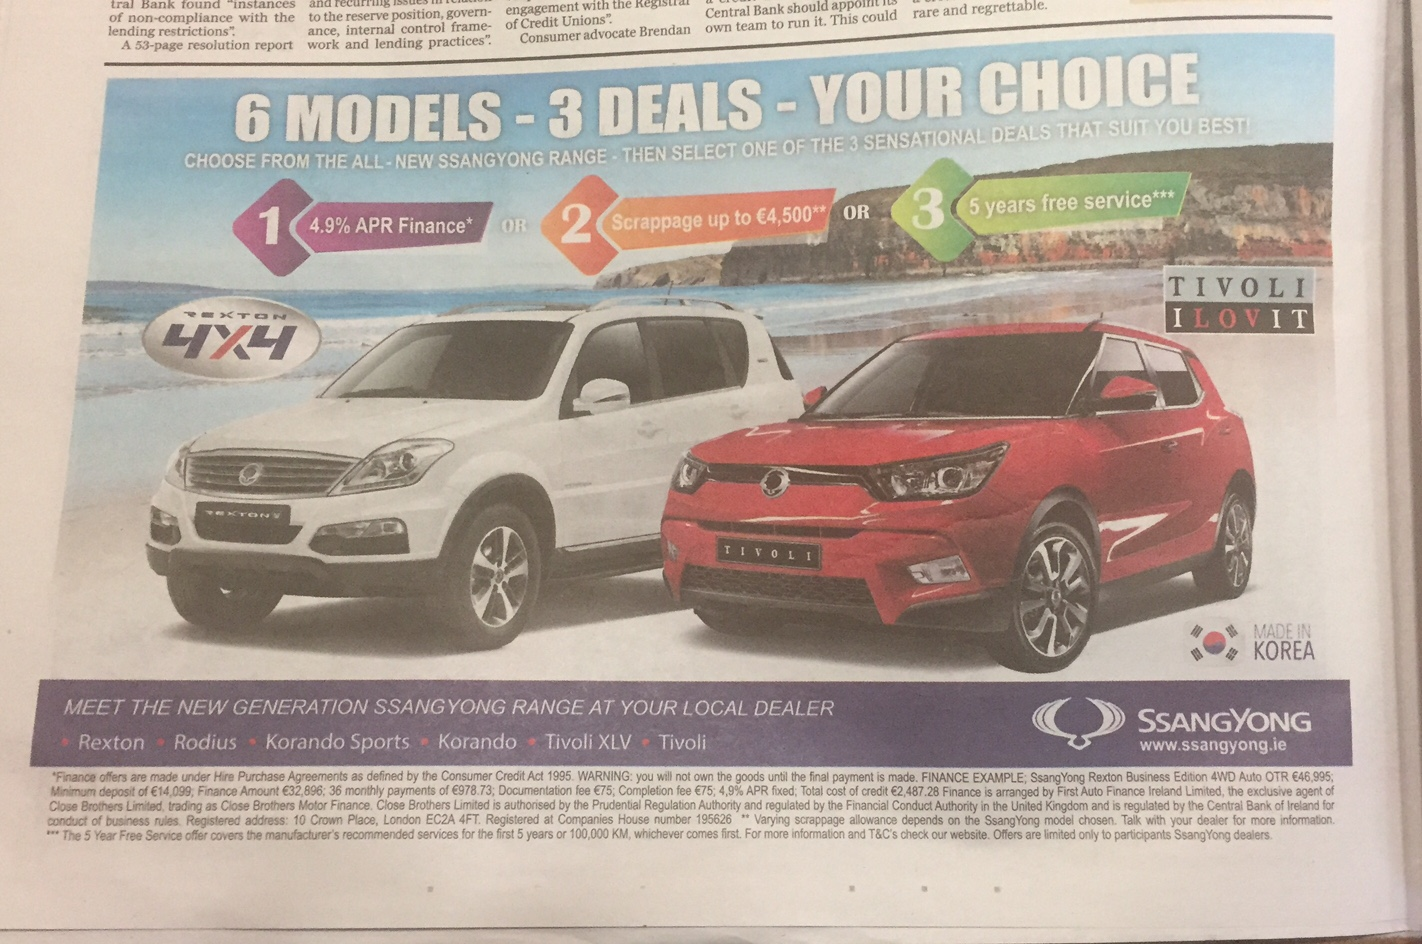 Ssang Yong – 6 models – 3 deals – your choice